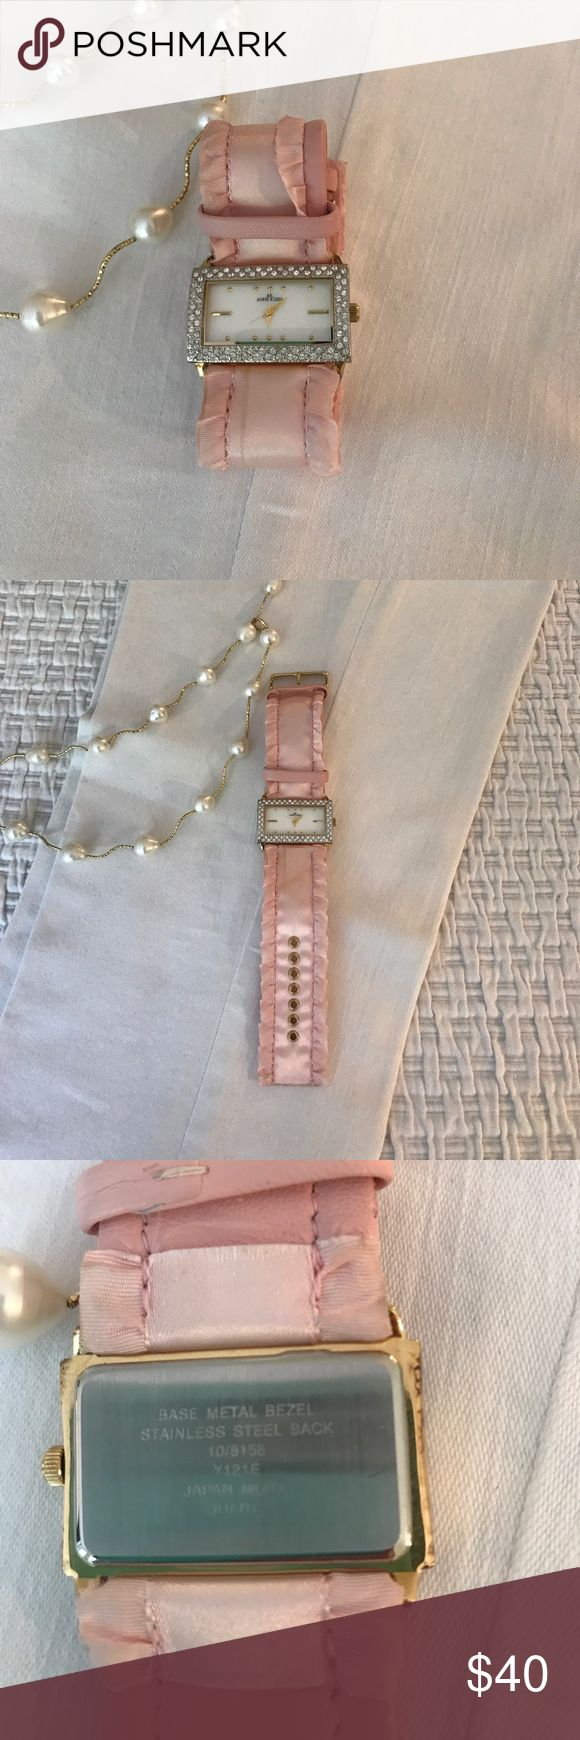 Gorgeous Anne Klein pink satin rhinestone watch Have you read about the new developments in the Anne Klein line? For Anne Klein watch lovers like myself, here is no need for a revival because they are always awesome and run forever. I love this sweet watch and I put in a new battery and it's ready to walk around and get some compliments. Guaranteed authentic. The back reads: base metal bezel, stainless steel back, Japan Movt. No scratches on face. Anne Klein Accessories Watches